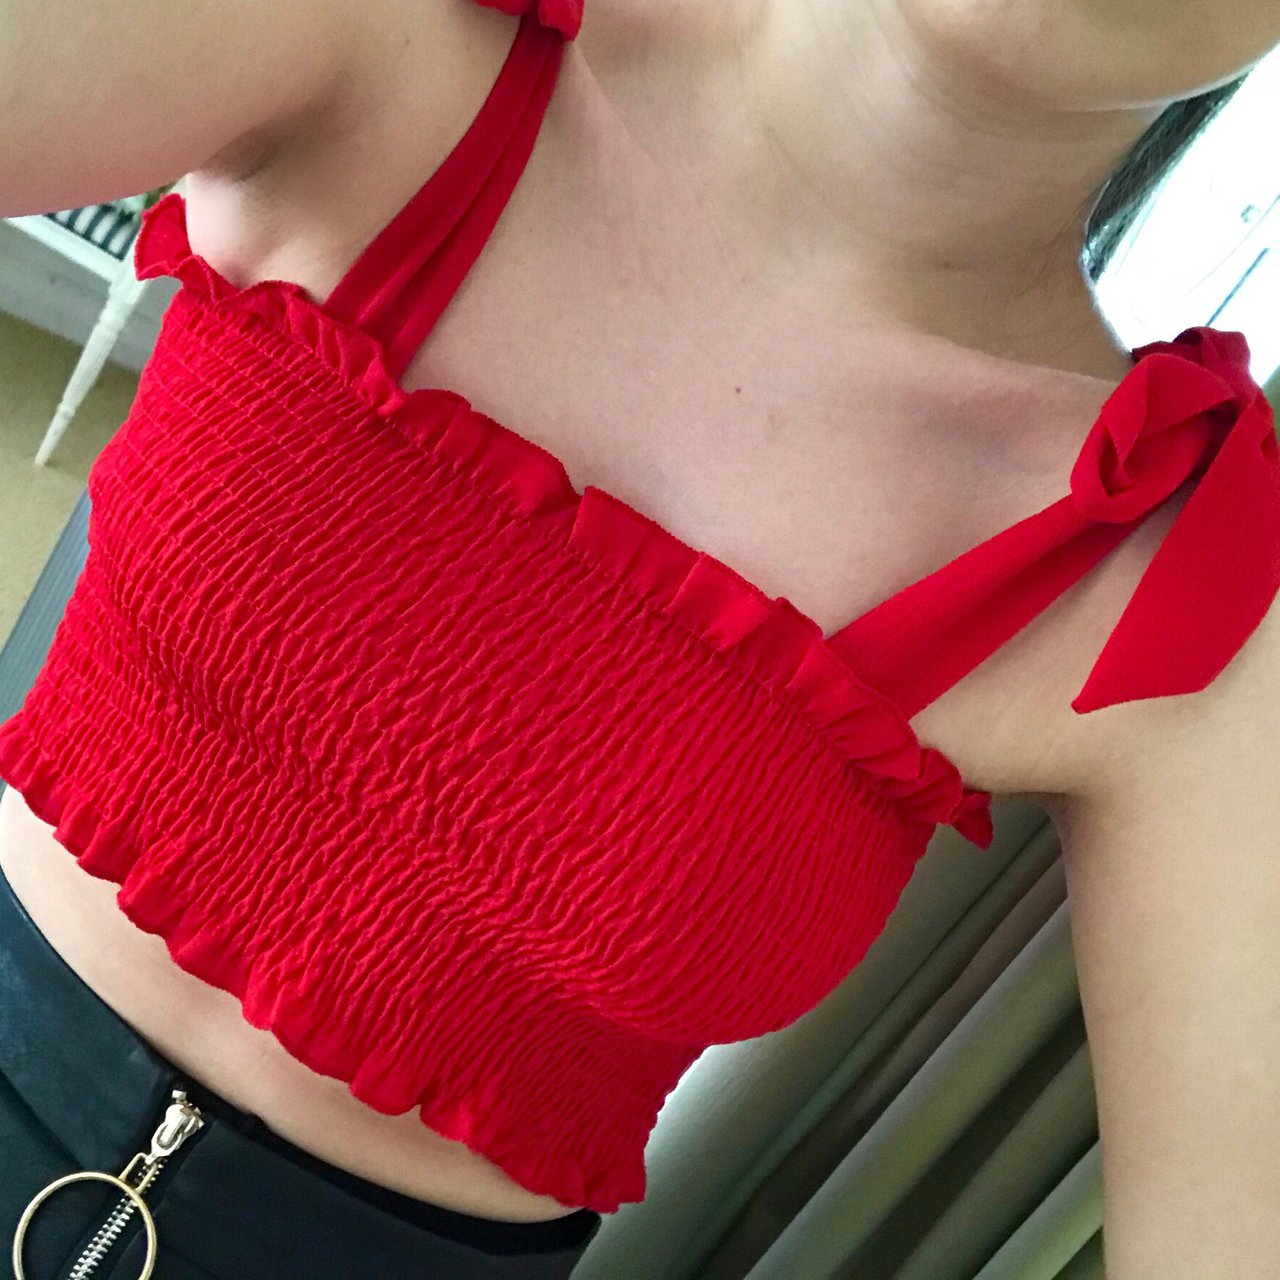 dc3e9c49a841 Ribbed Ruched Crop Top with bows ties on shoulders. Red. are - Depop